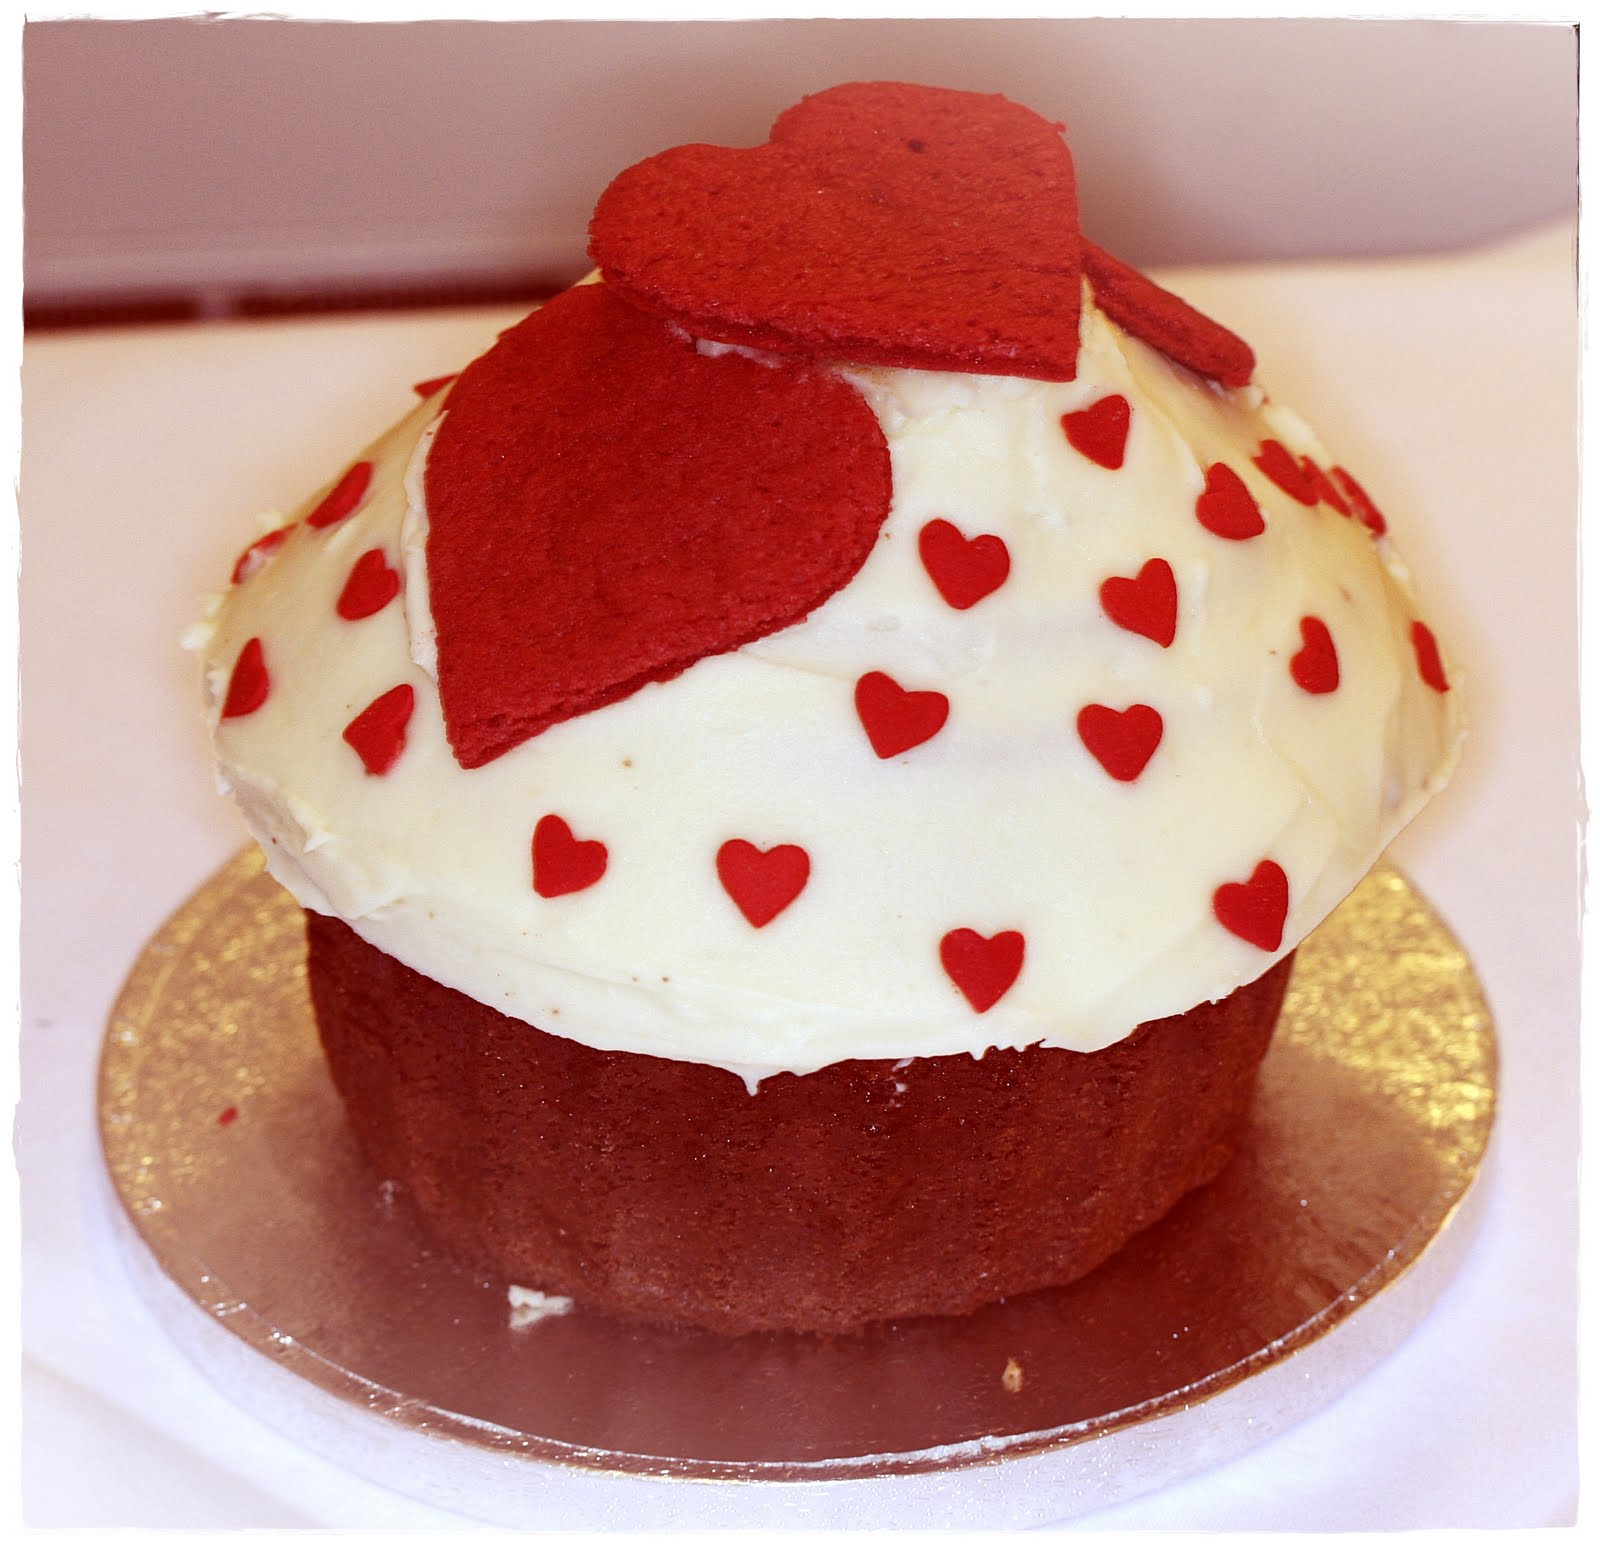 cupcake super duper giant vanilla cupcake topped with three red heart ...